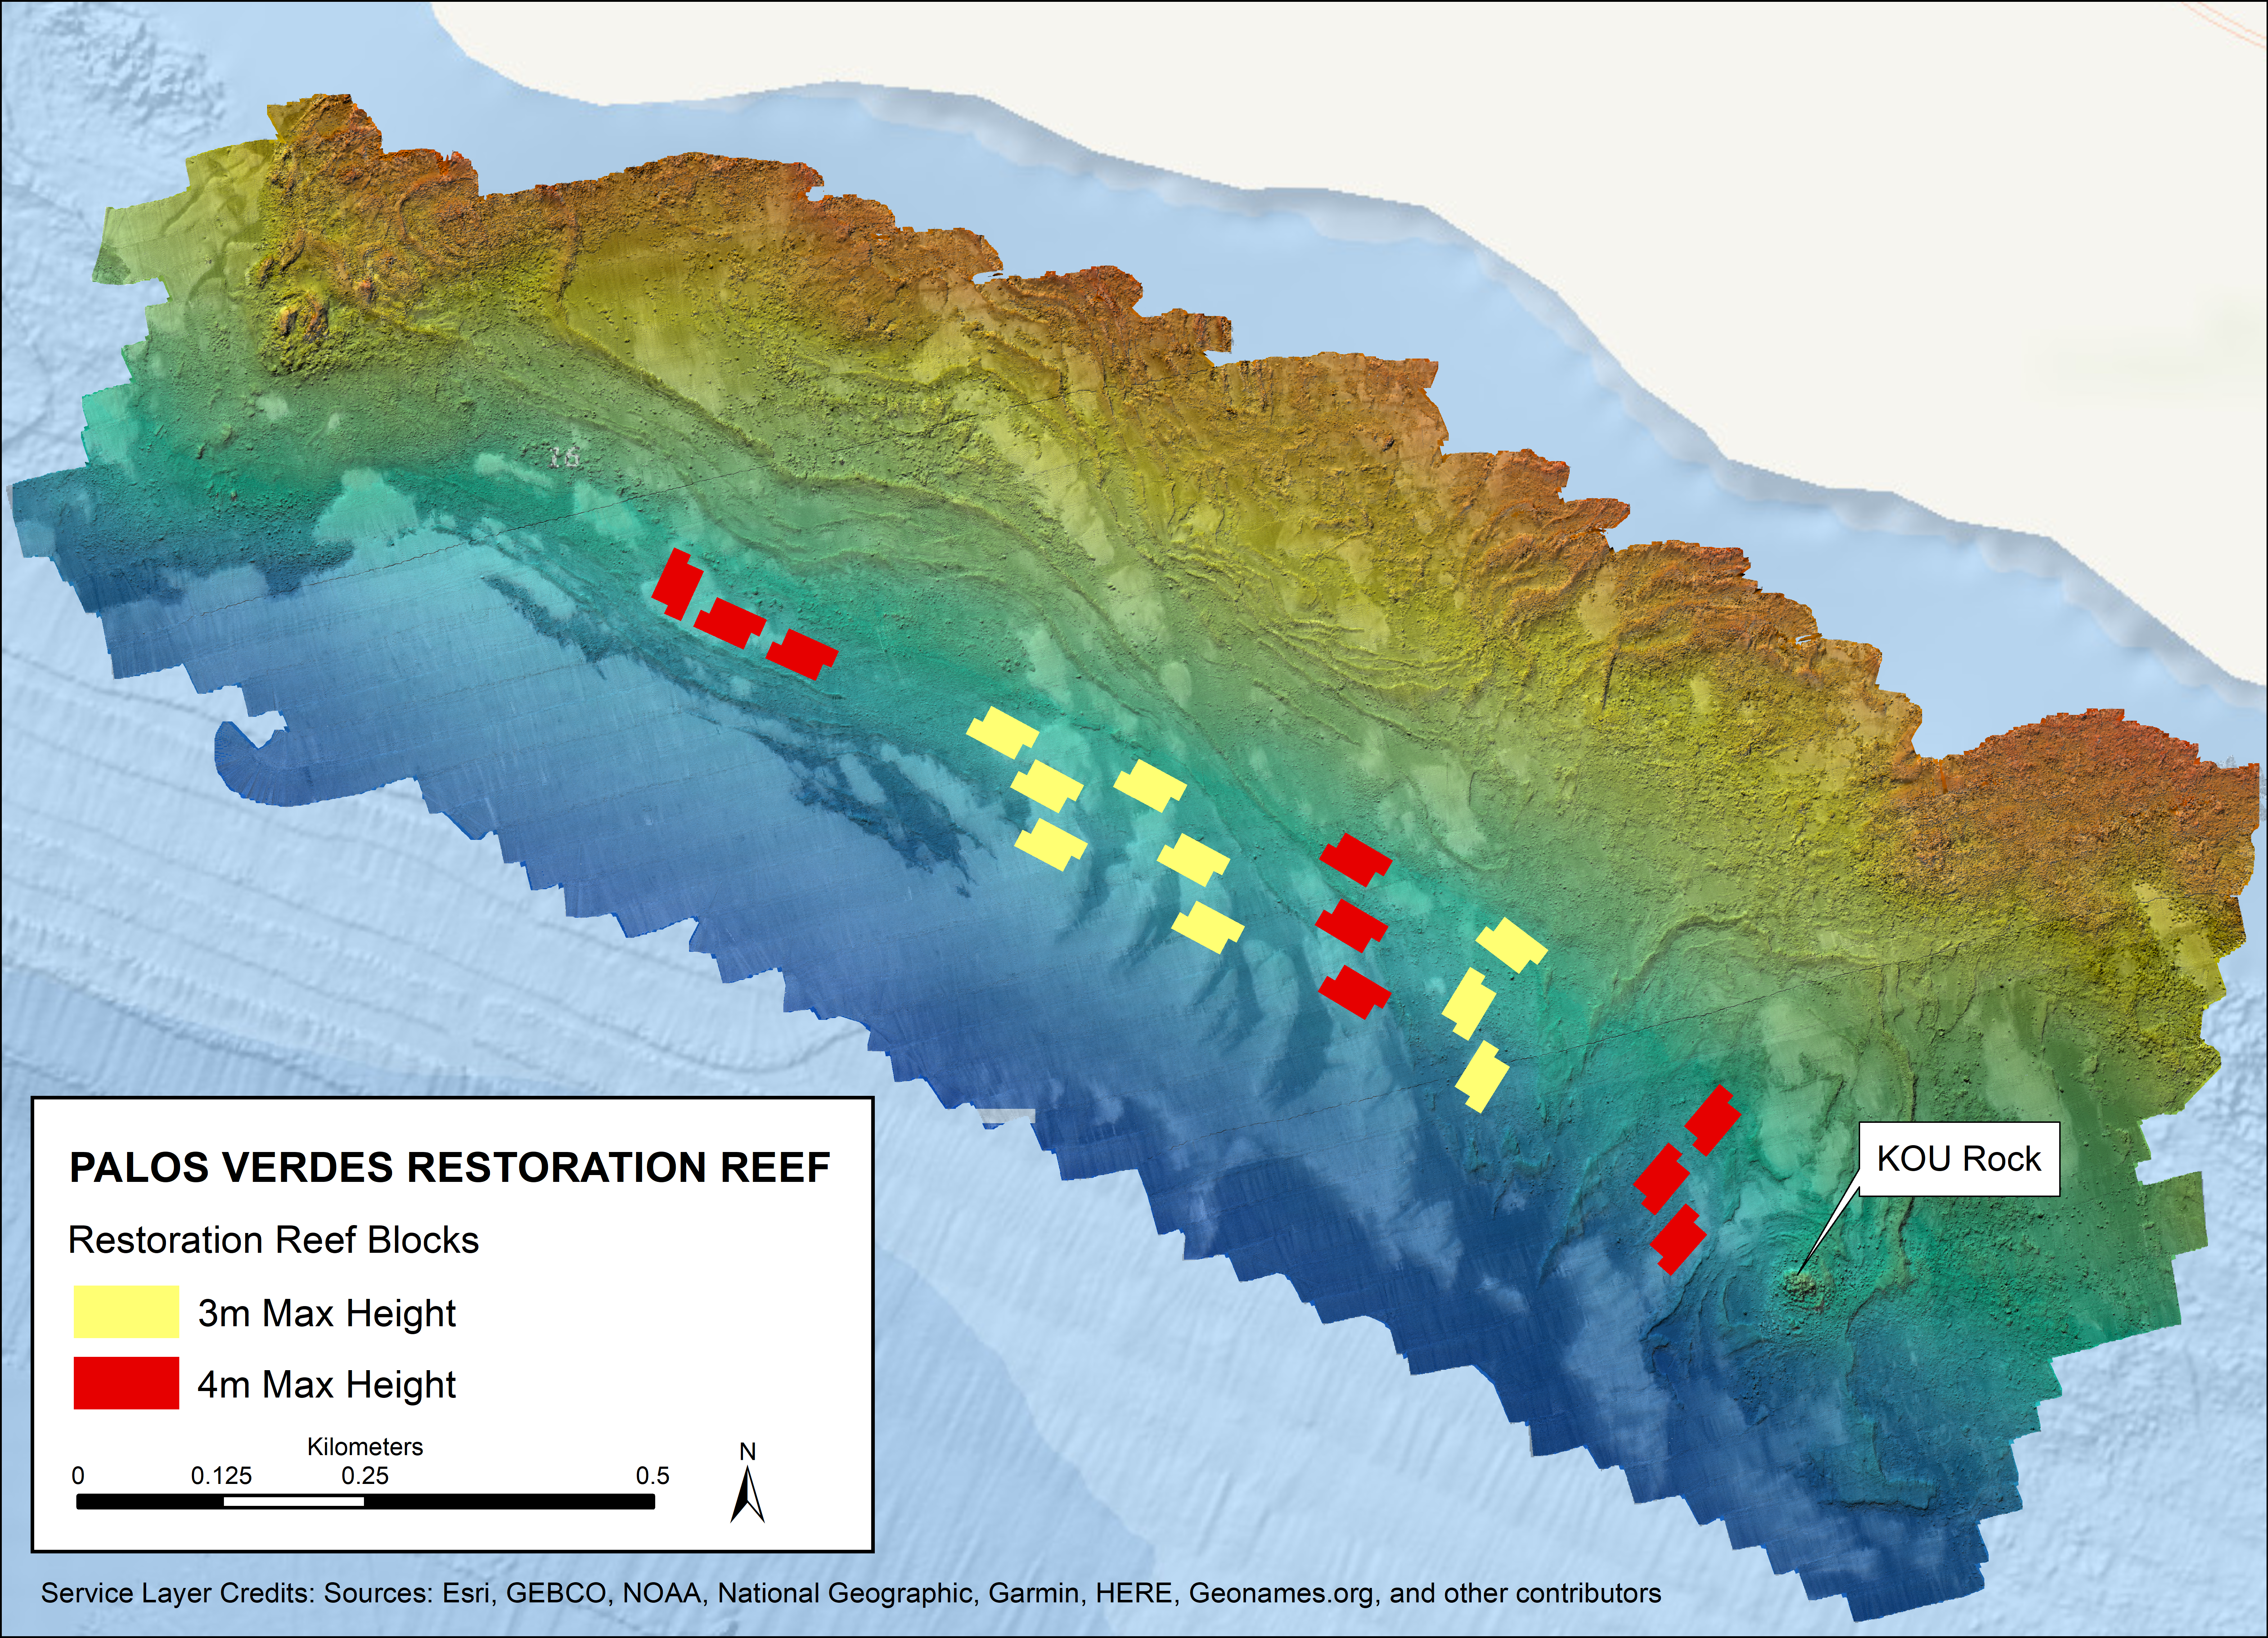 Palos Verdes Restoration Reef with bathymetry and backscatter